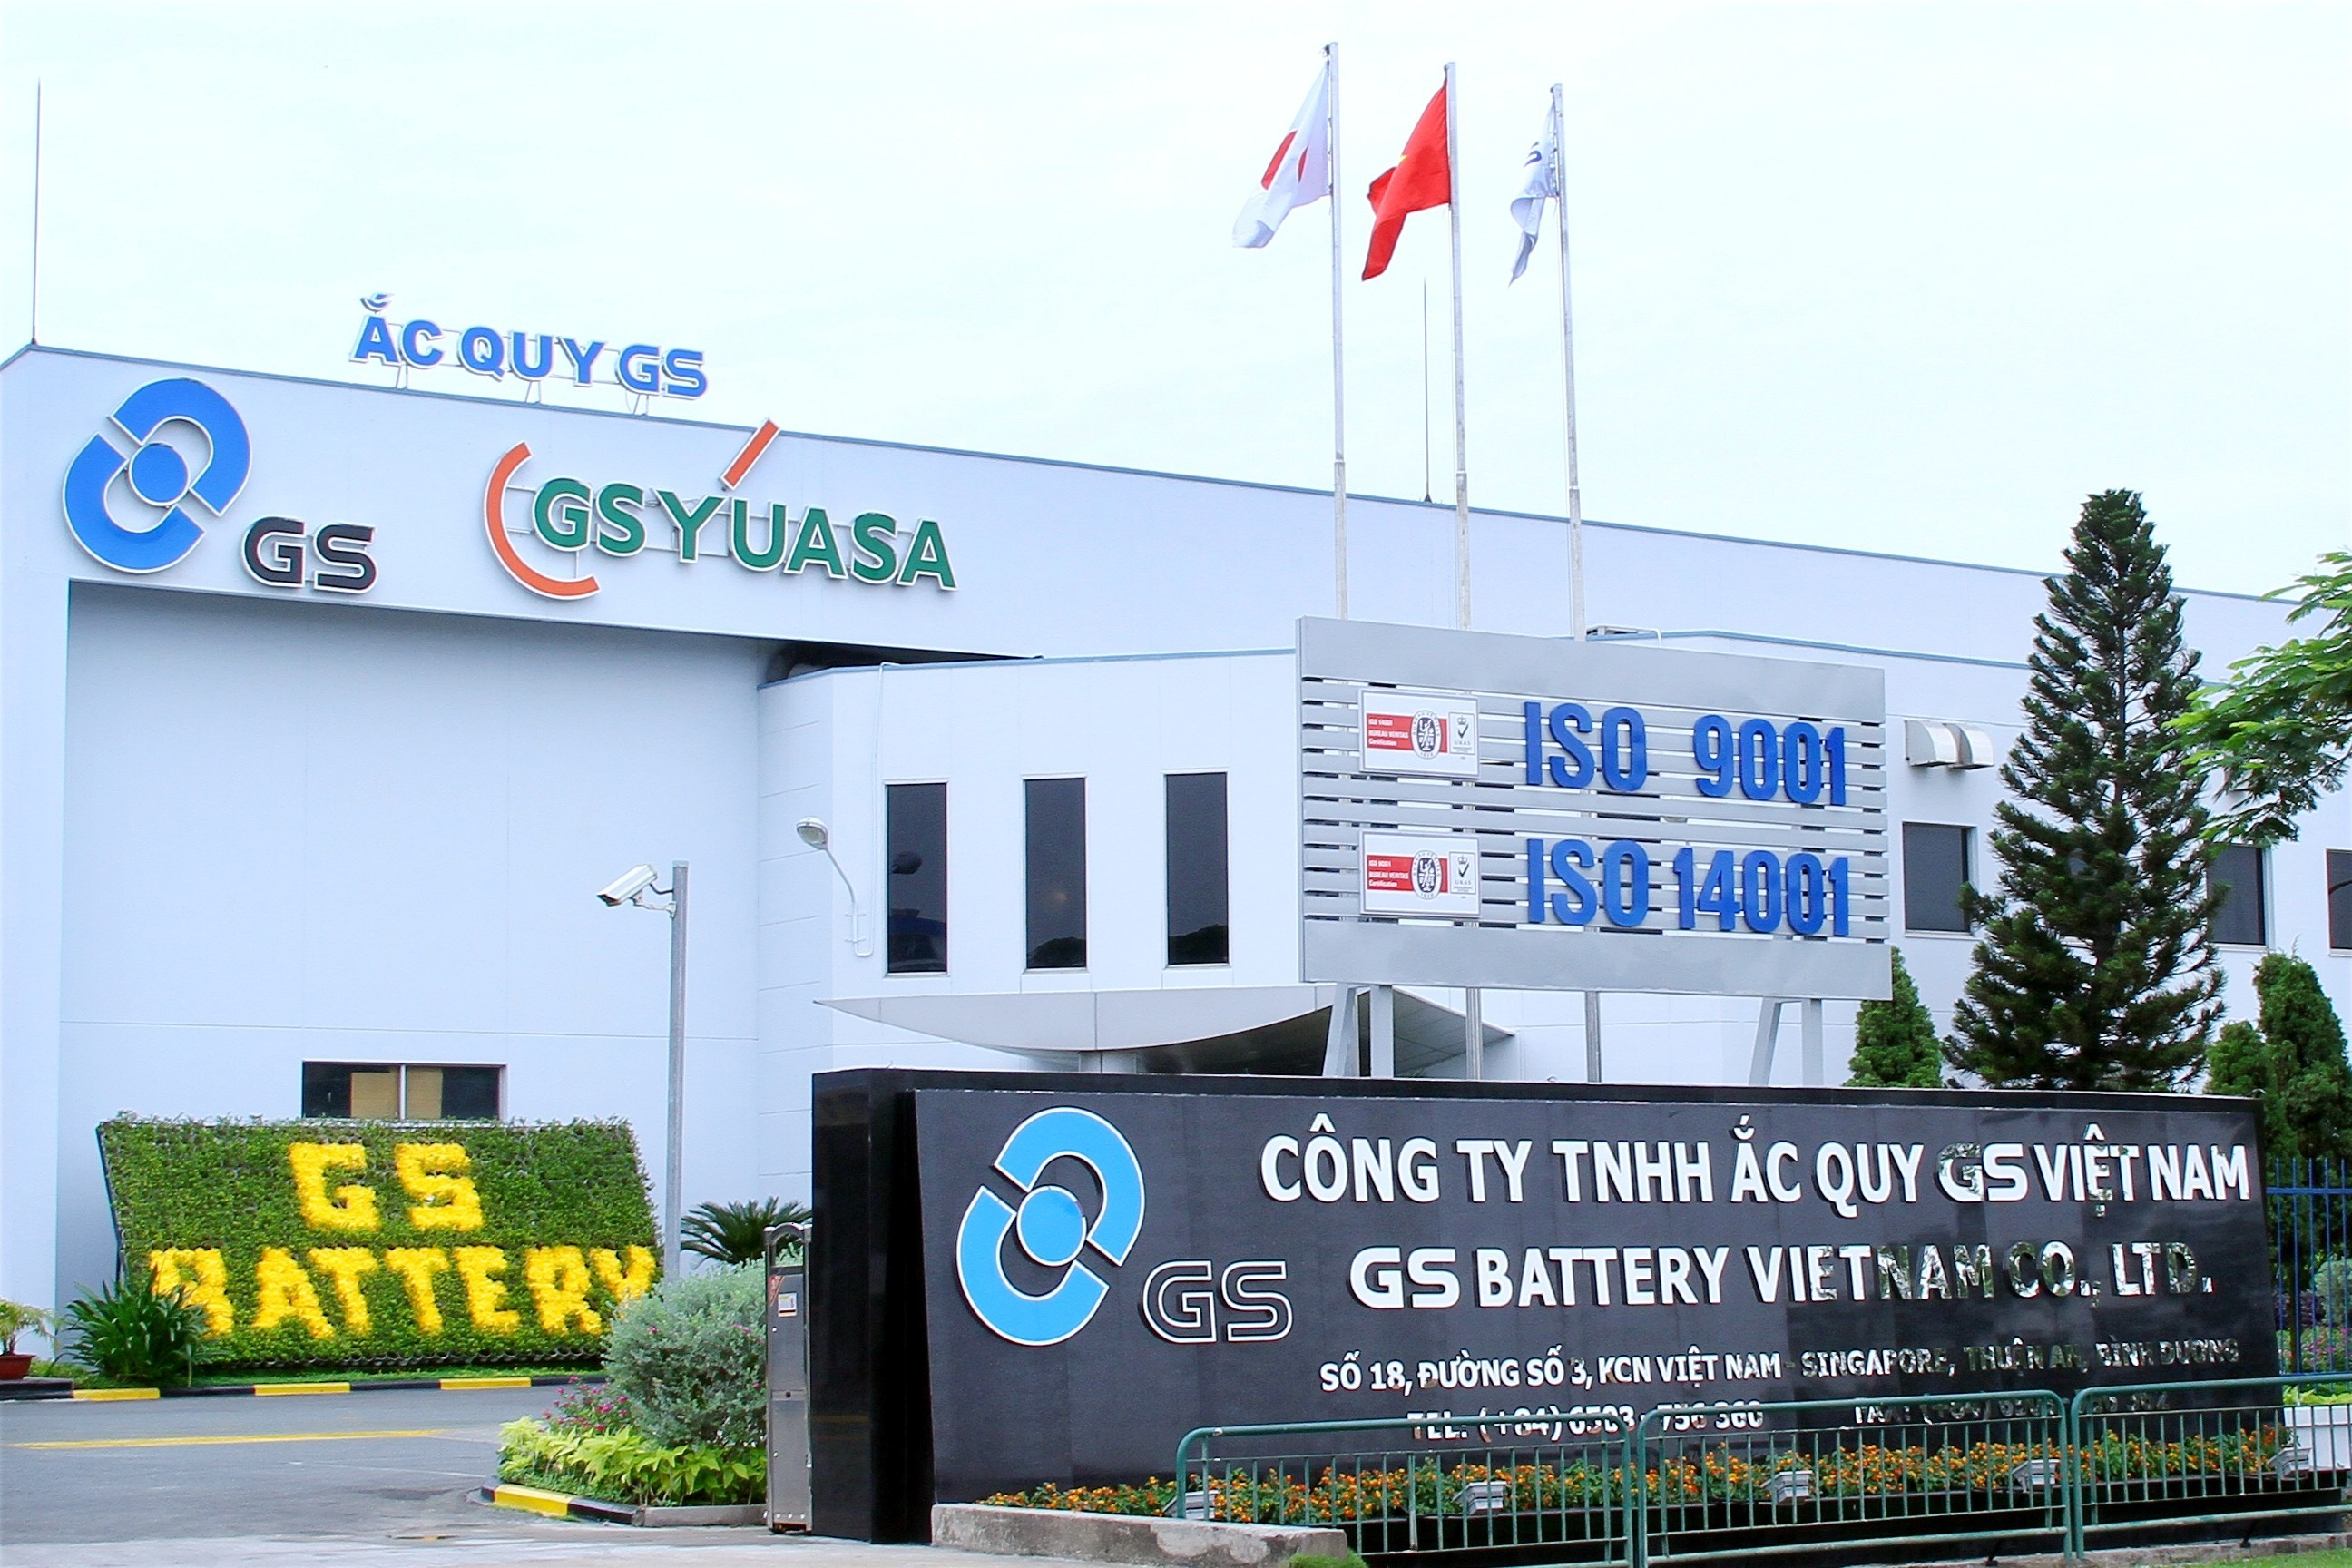 GS Battery Vietnam Co., Ltd.